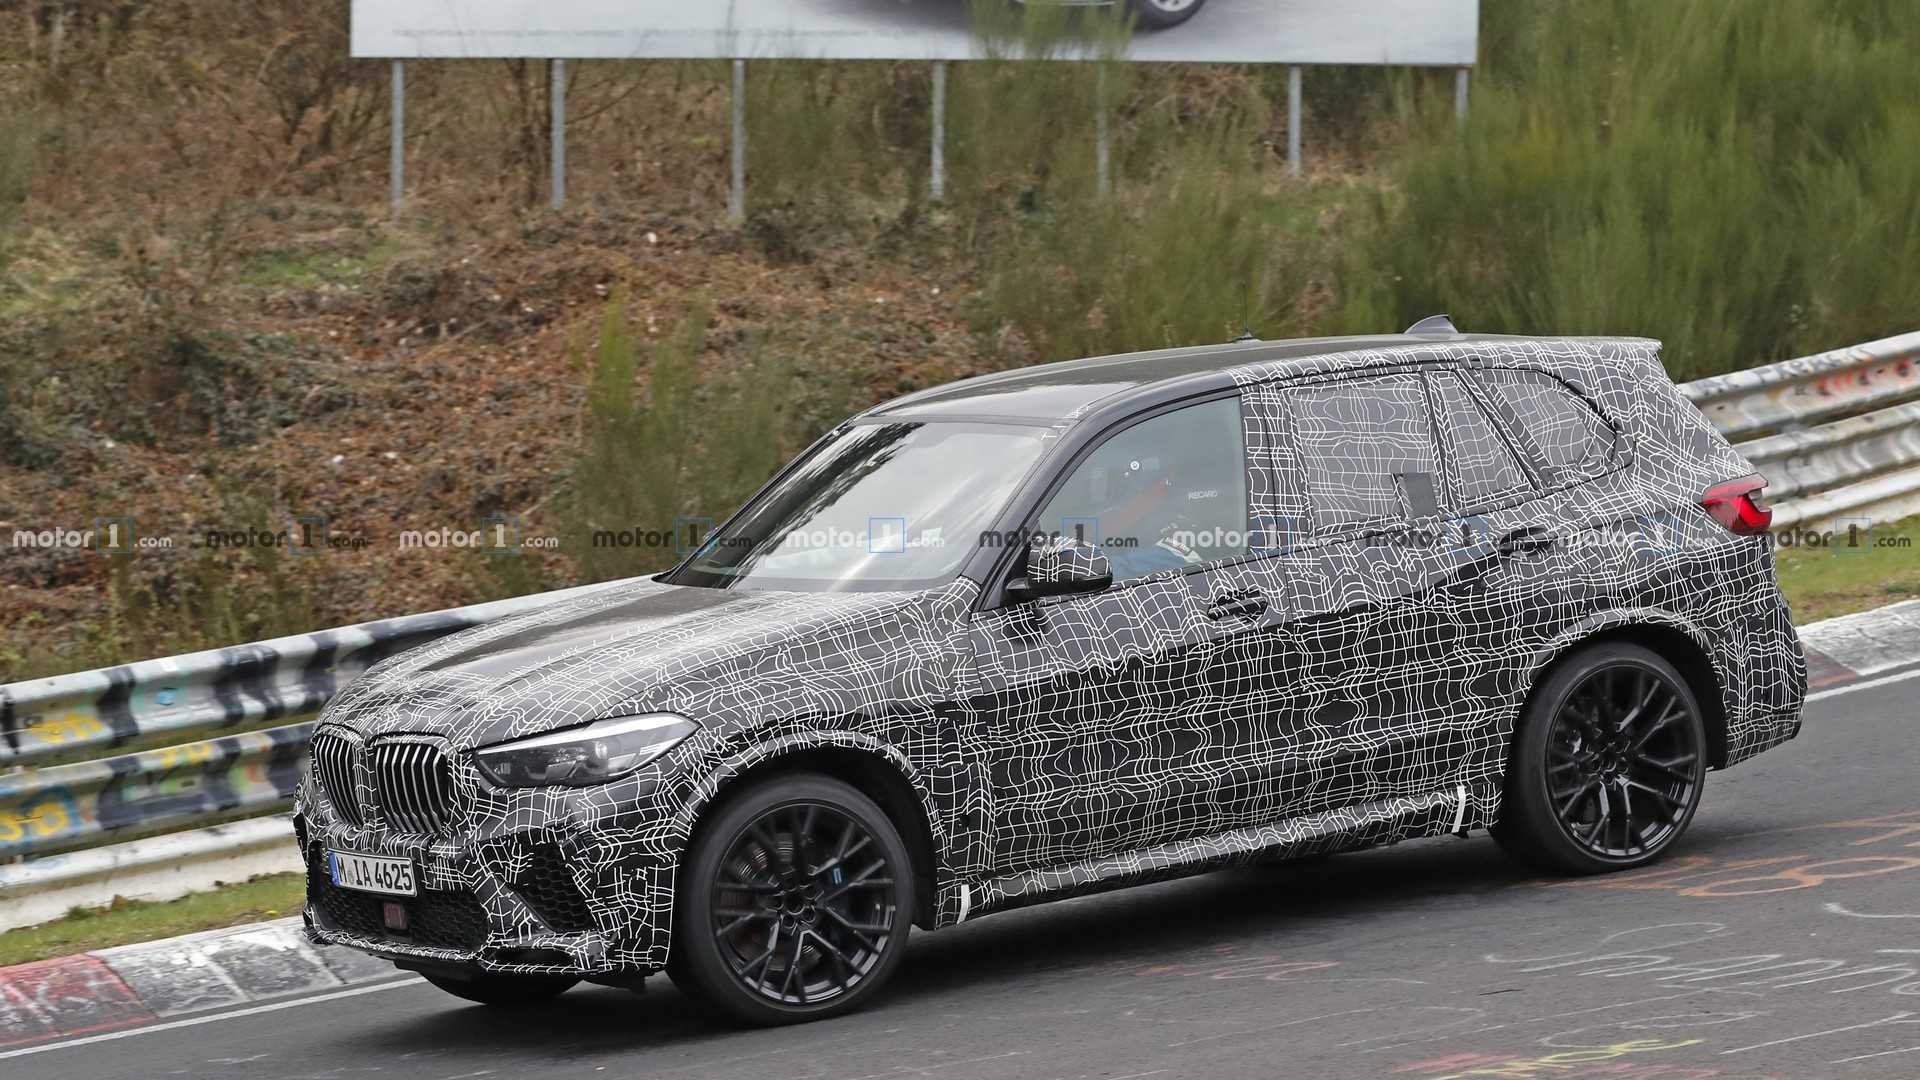 2020 Bmw X5 M Spied Inside And Out While Refueling